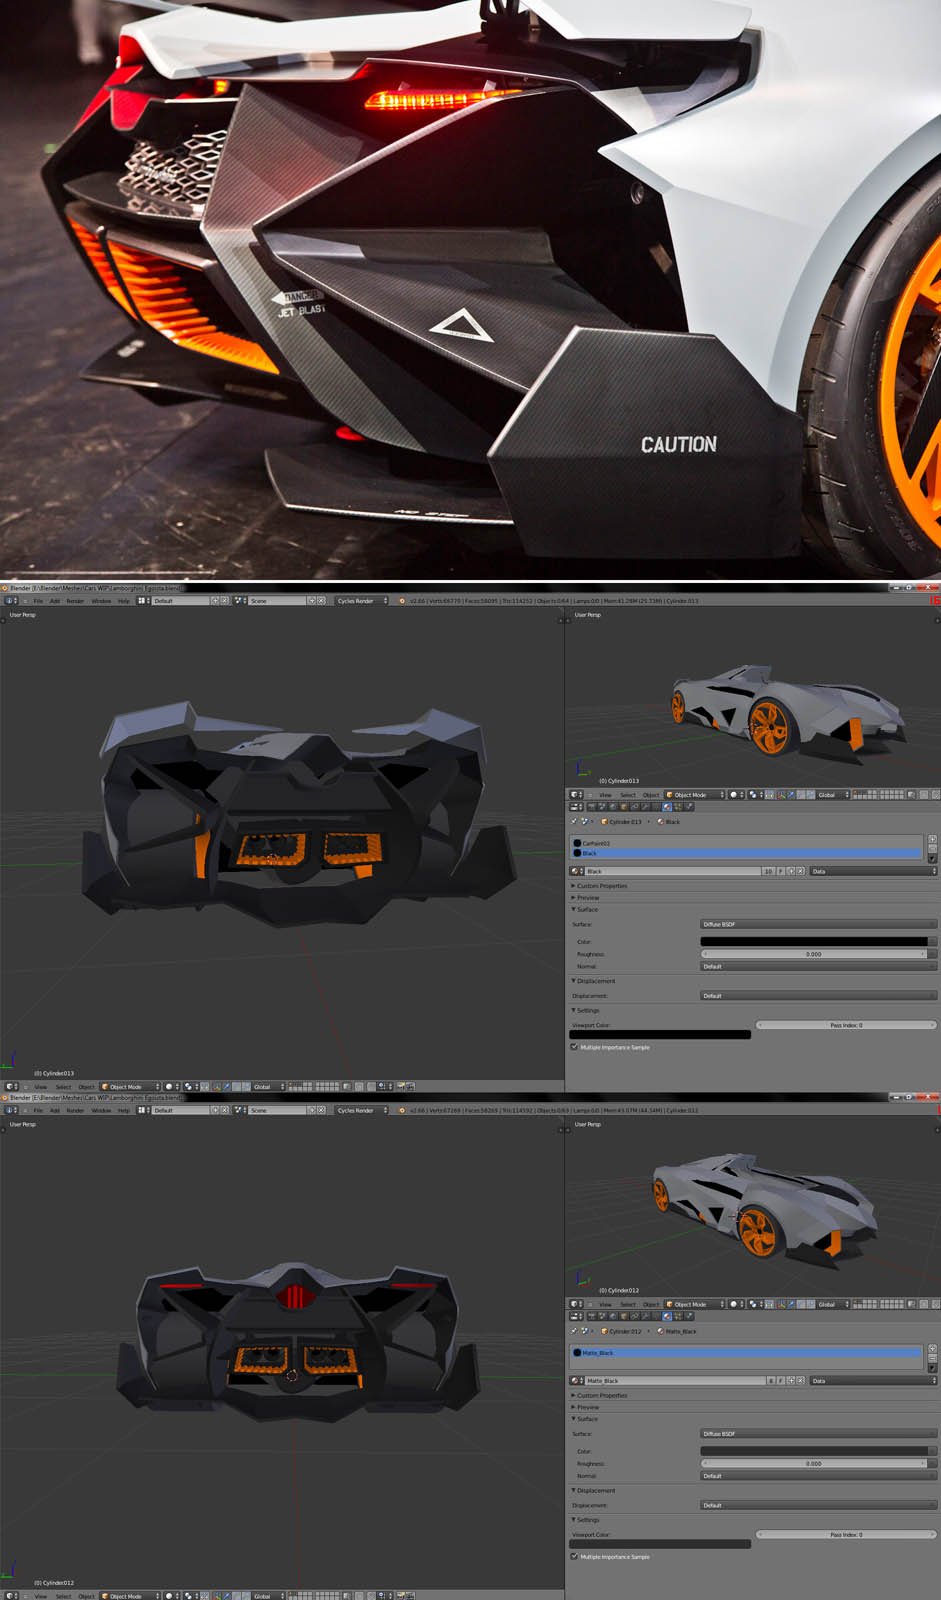 Building the lamborghini egoista 3d model sketchfab blog now that we had the basis laid out for the egoistas rear it was time to finish the front of the car adding headlights lamborghini logo and some finer malvernweather